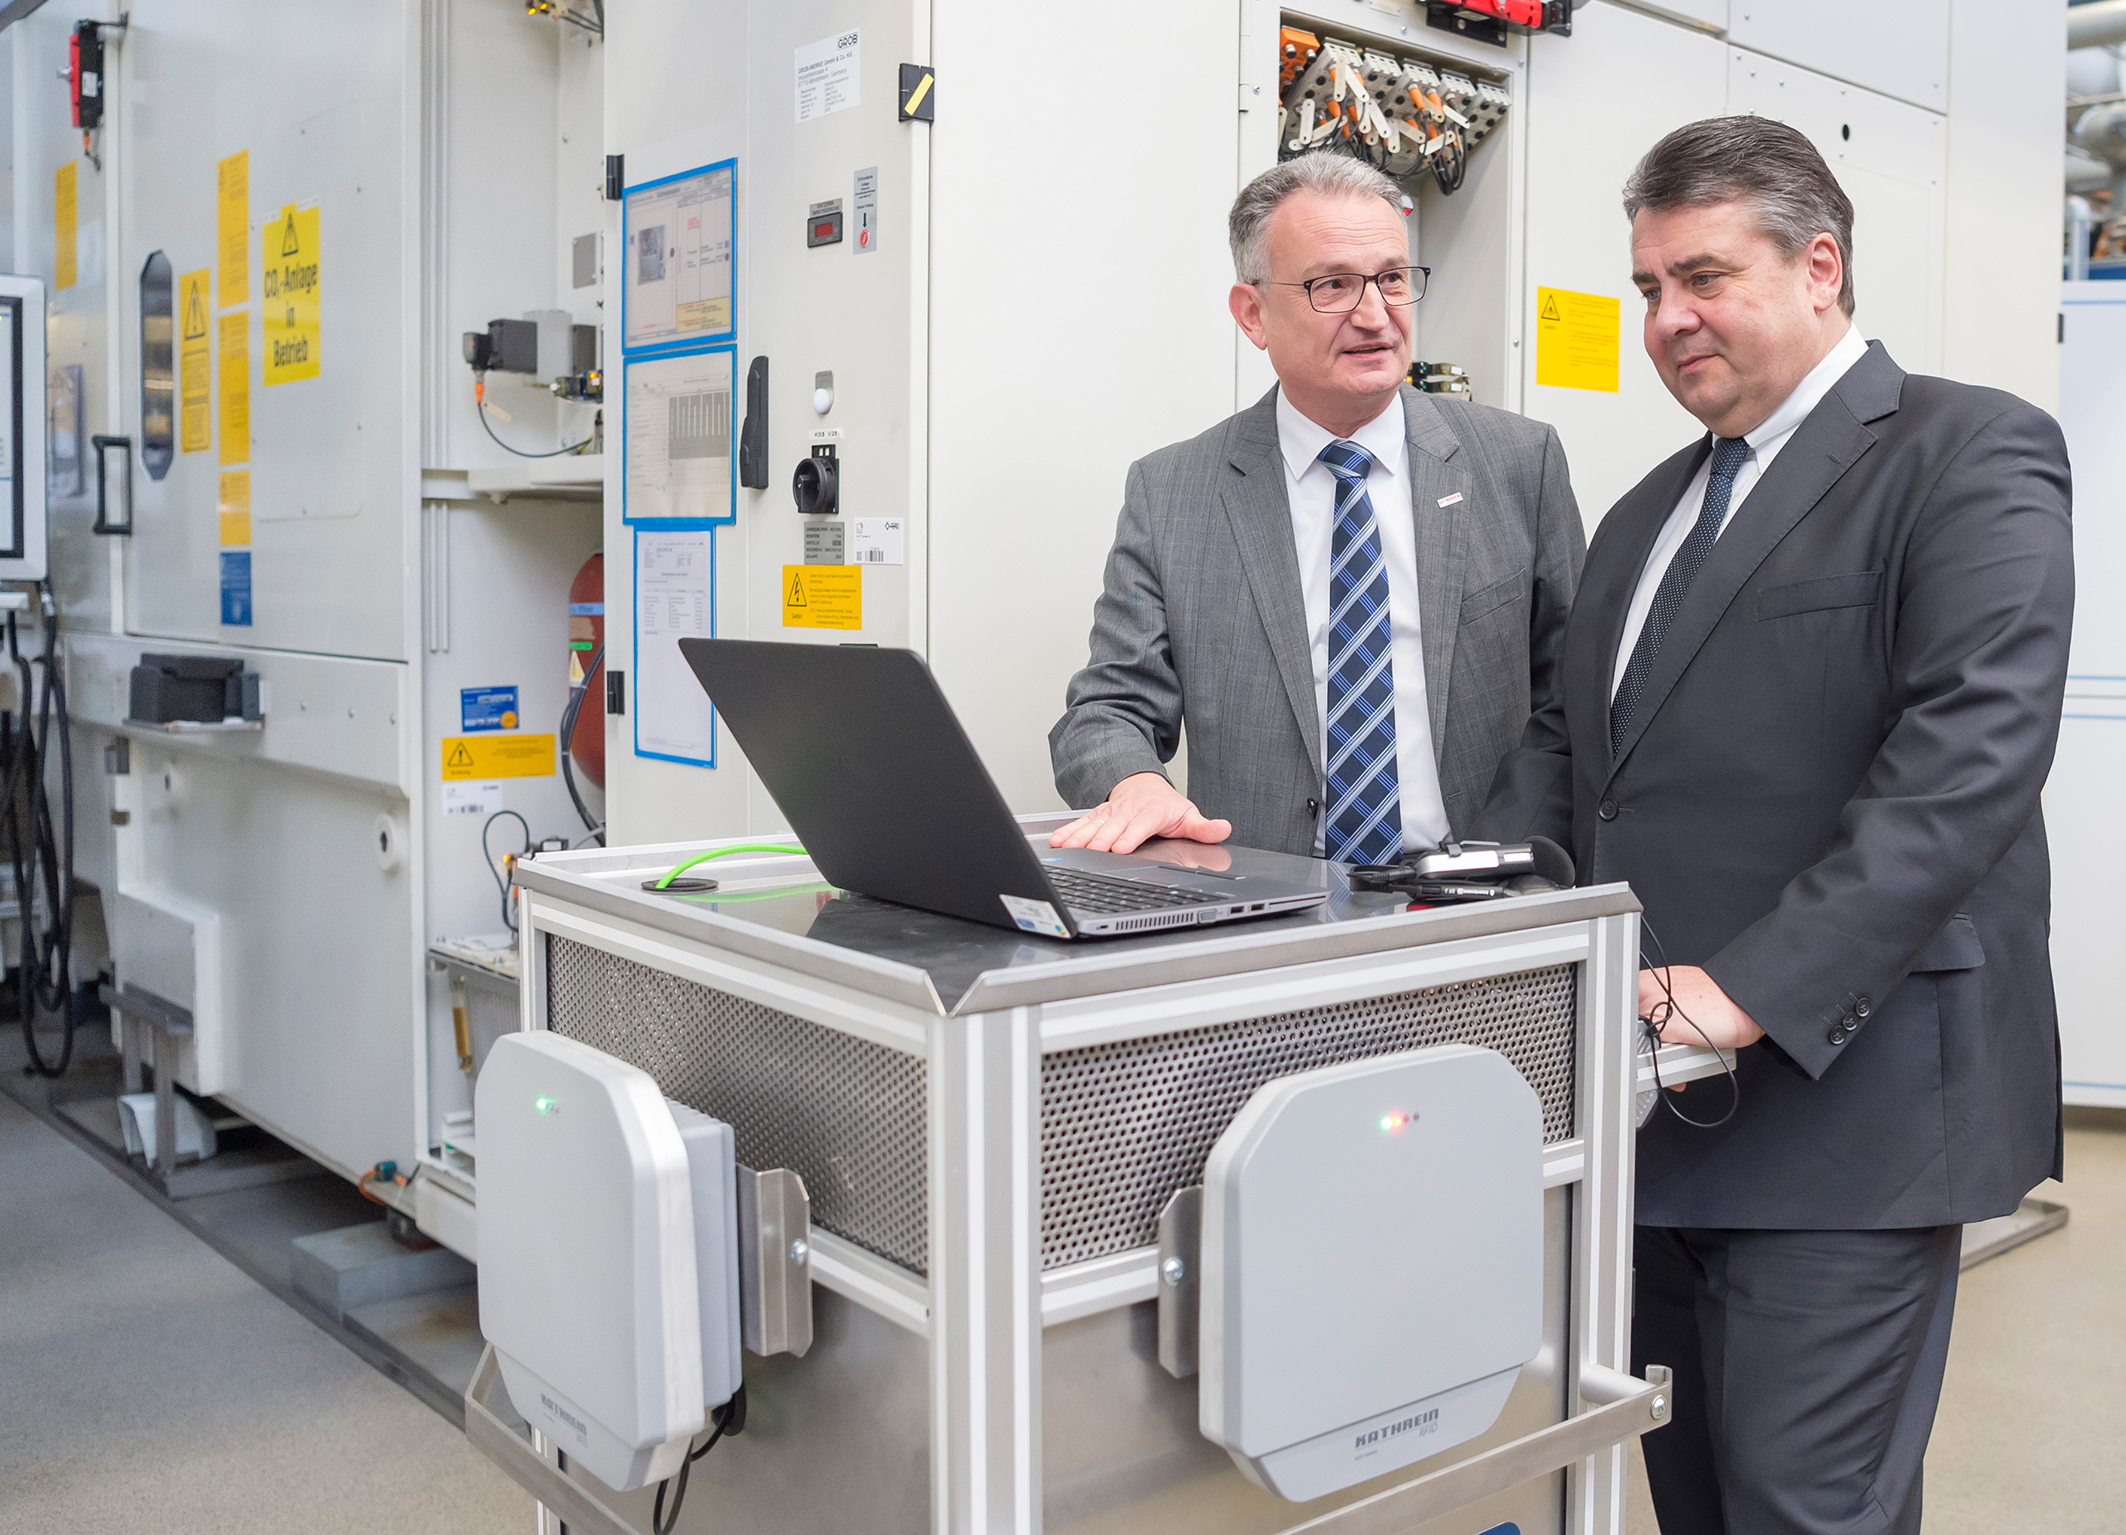 At Bosch, the German Economics Minister Sigmar Gabriel finds out about Industry 4.0